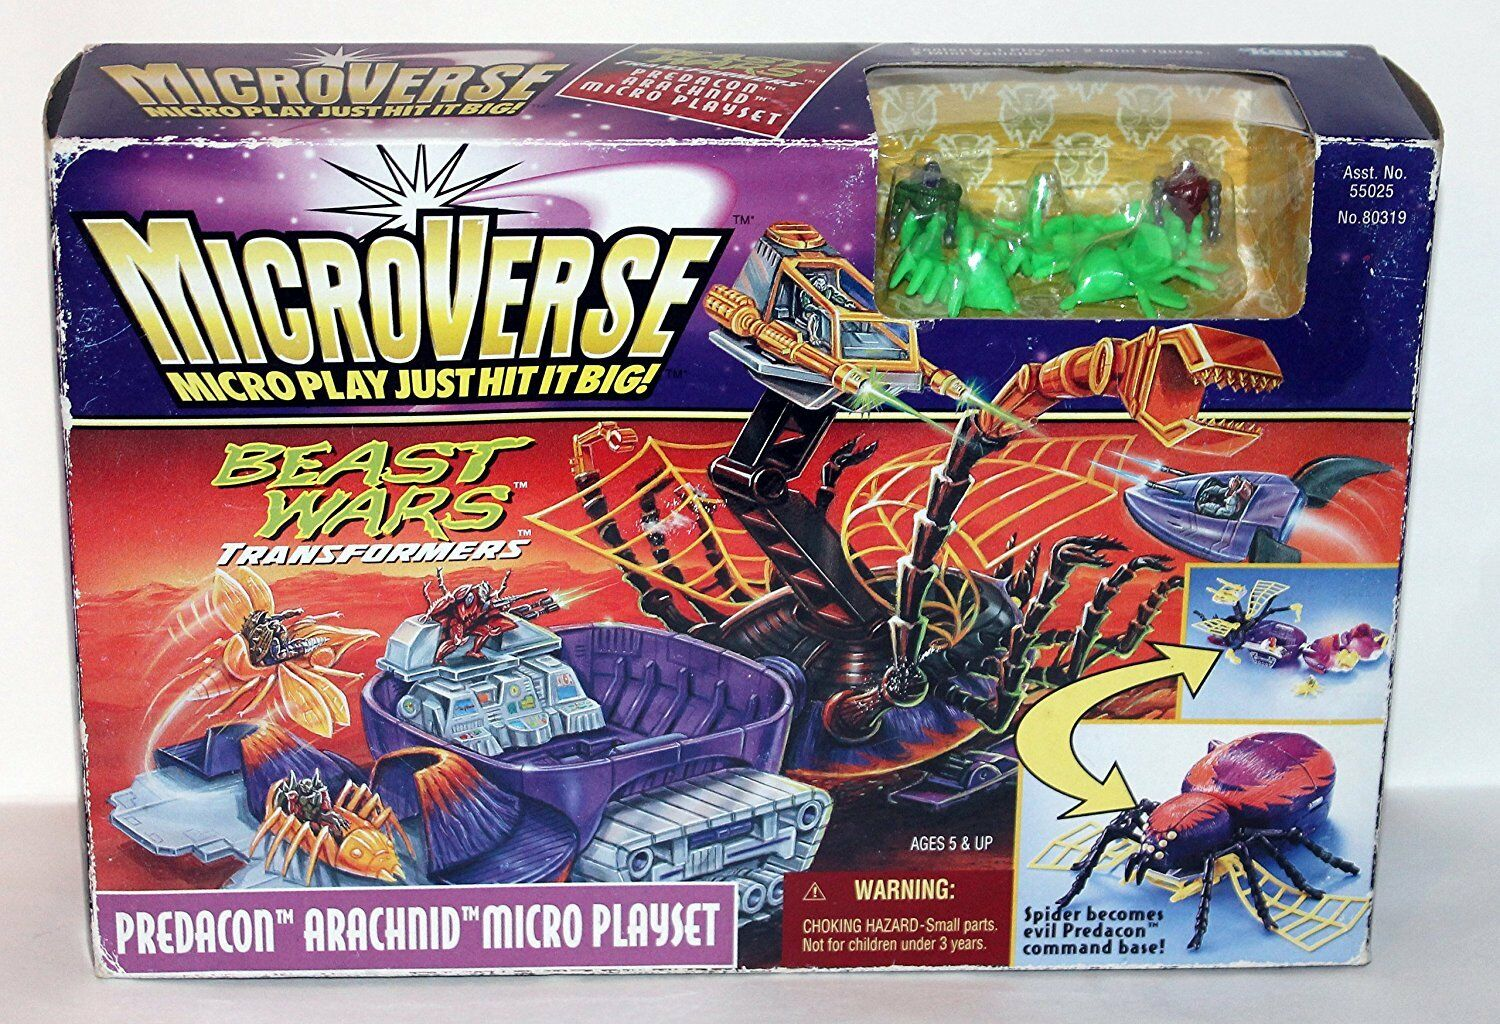 TRANSFORMERS BEAST WARS MICROVERSE Arachnid NEW ORCANOCH Kenner